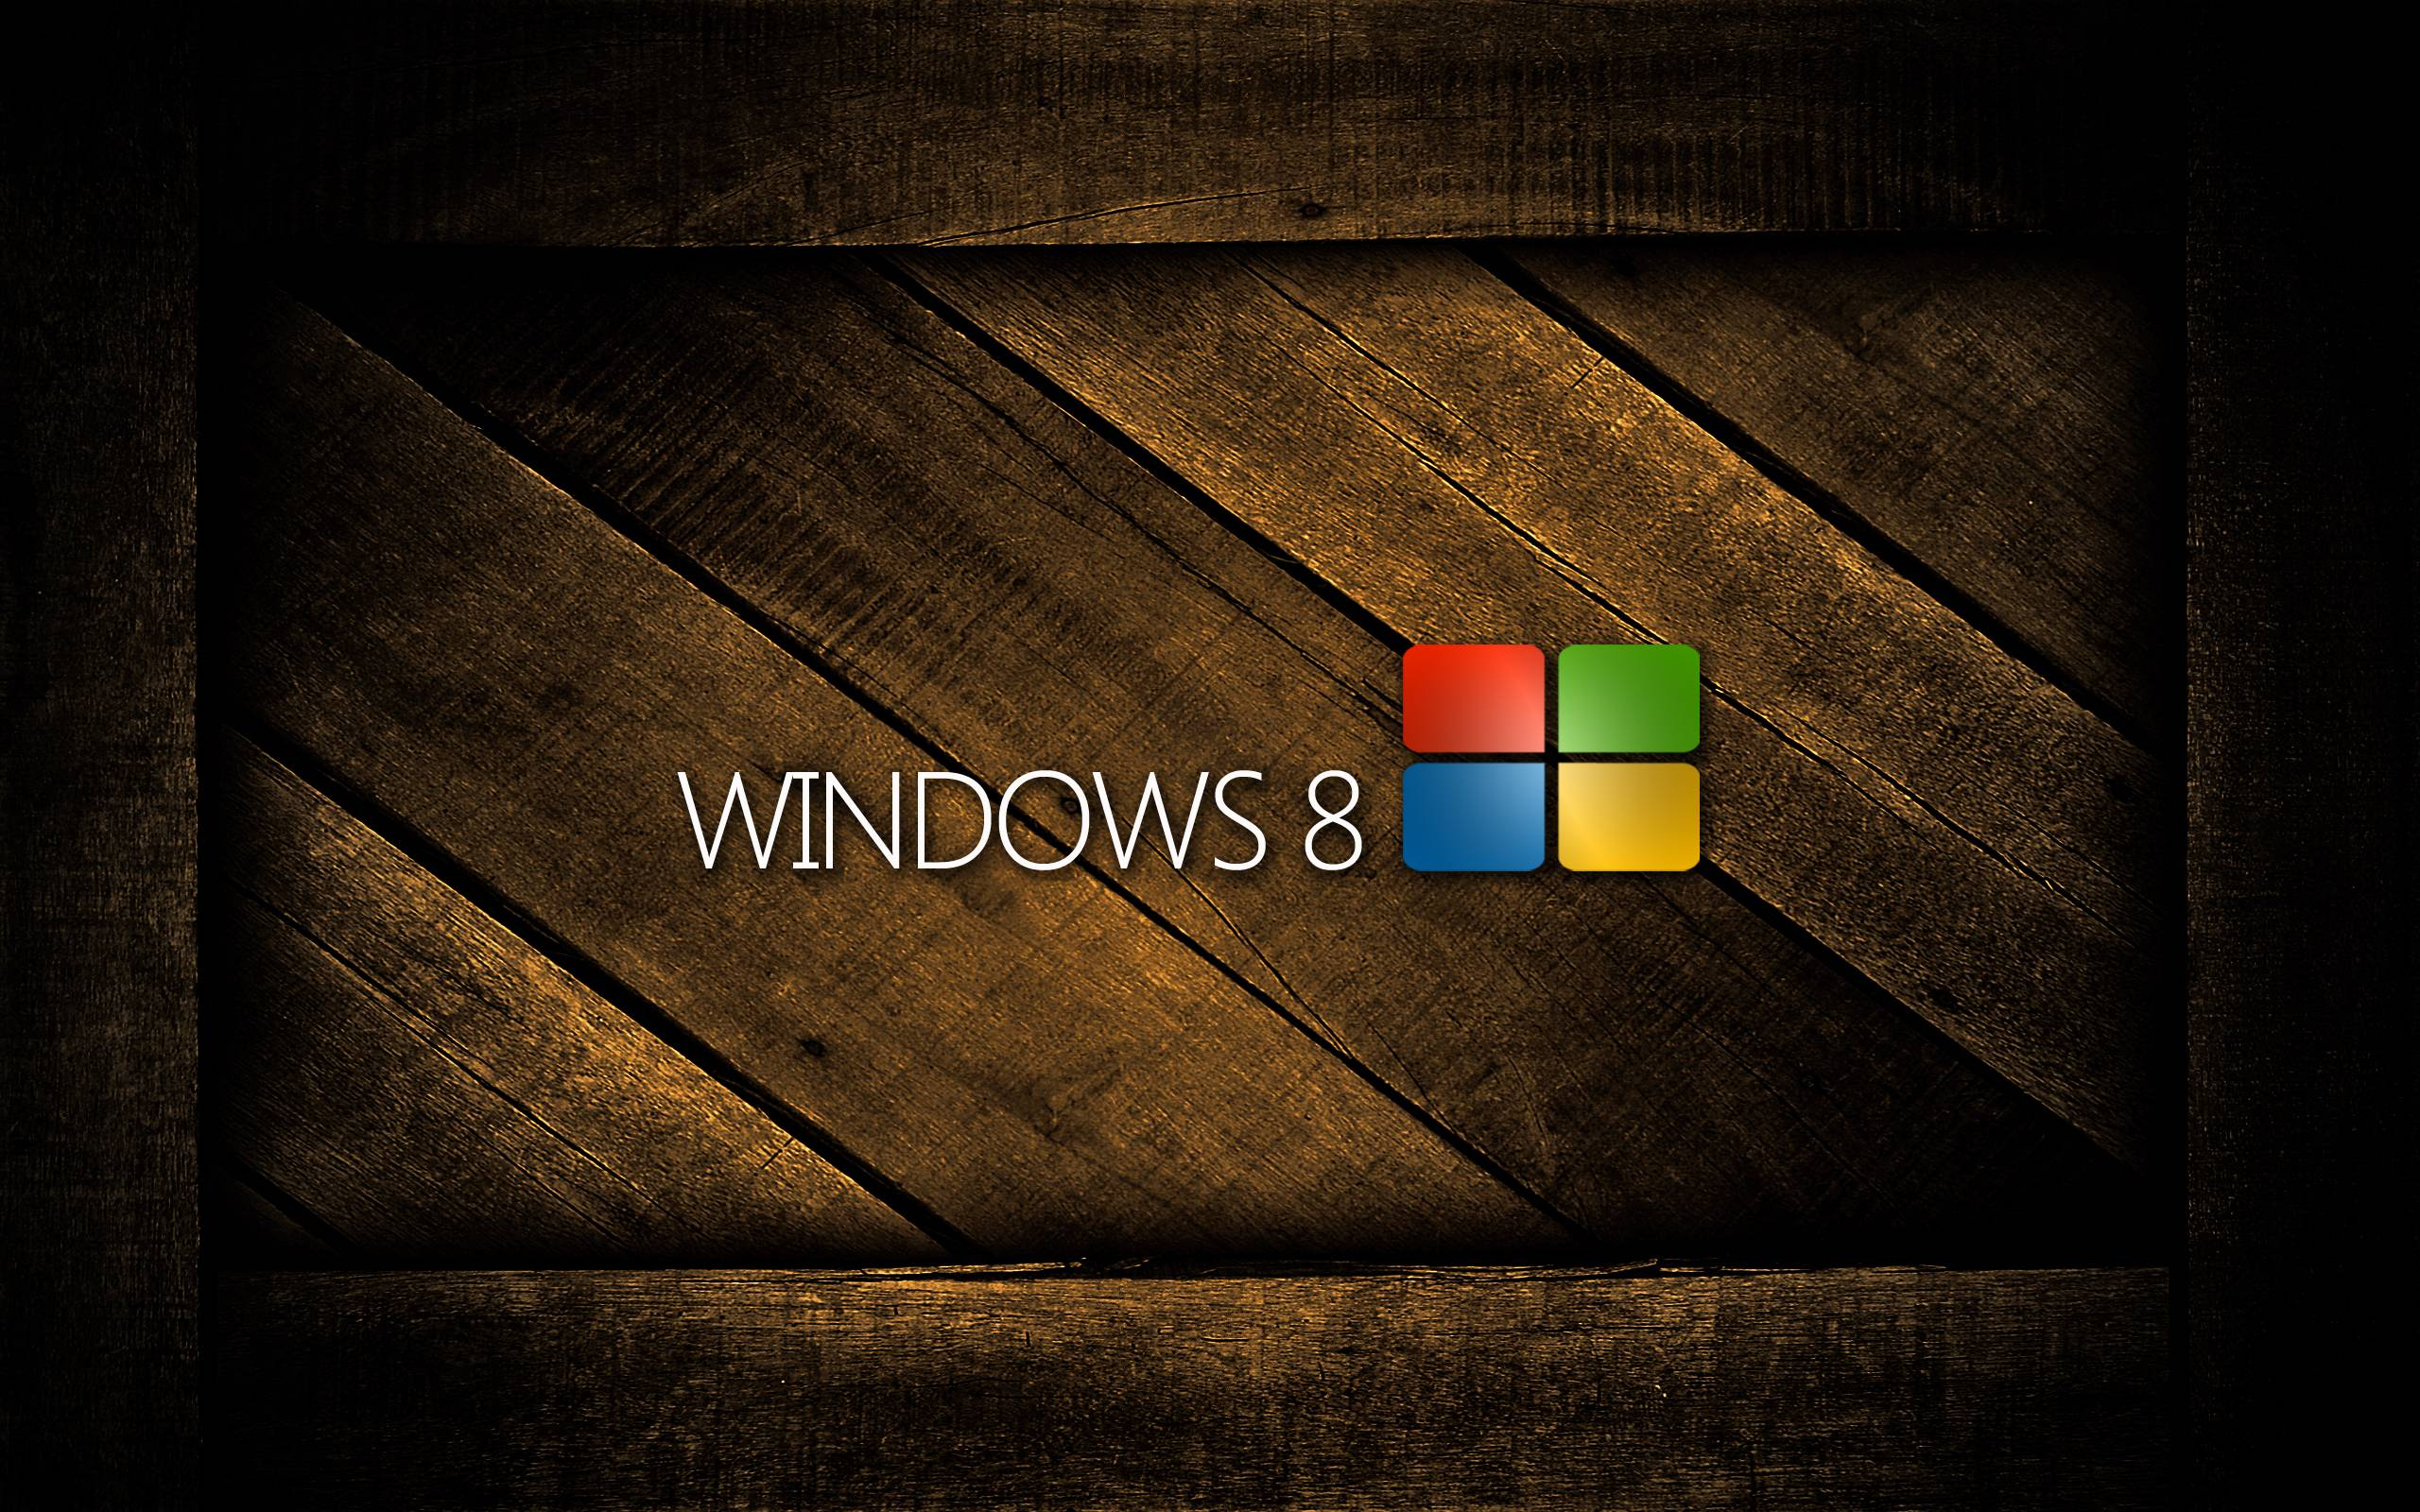 windows 8 hd wallpapers - wallpaper cave